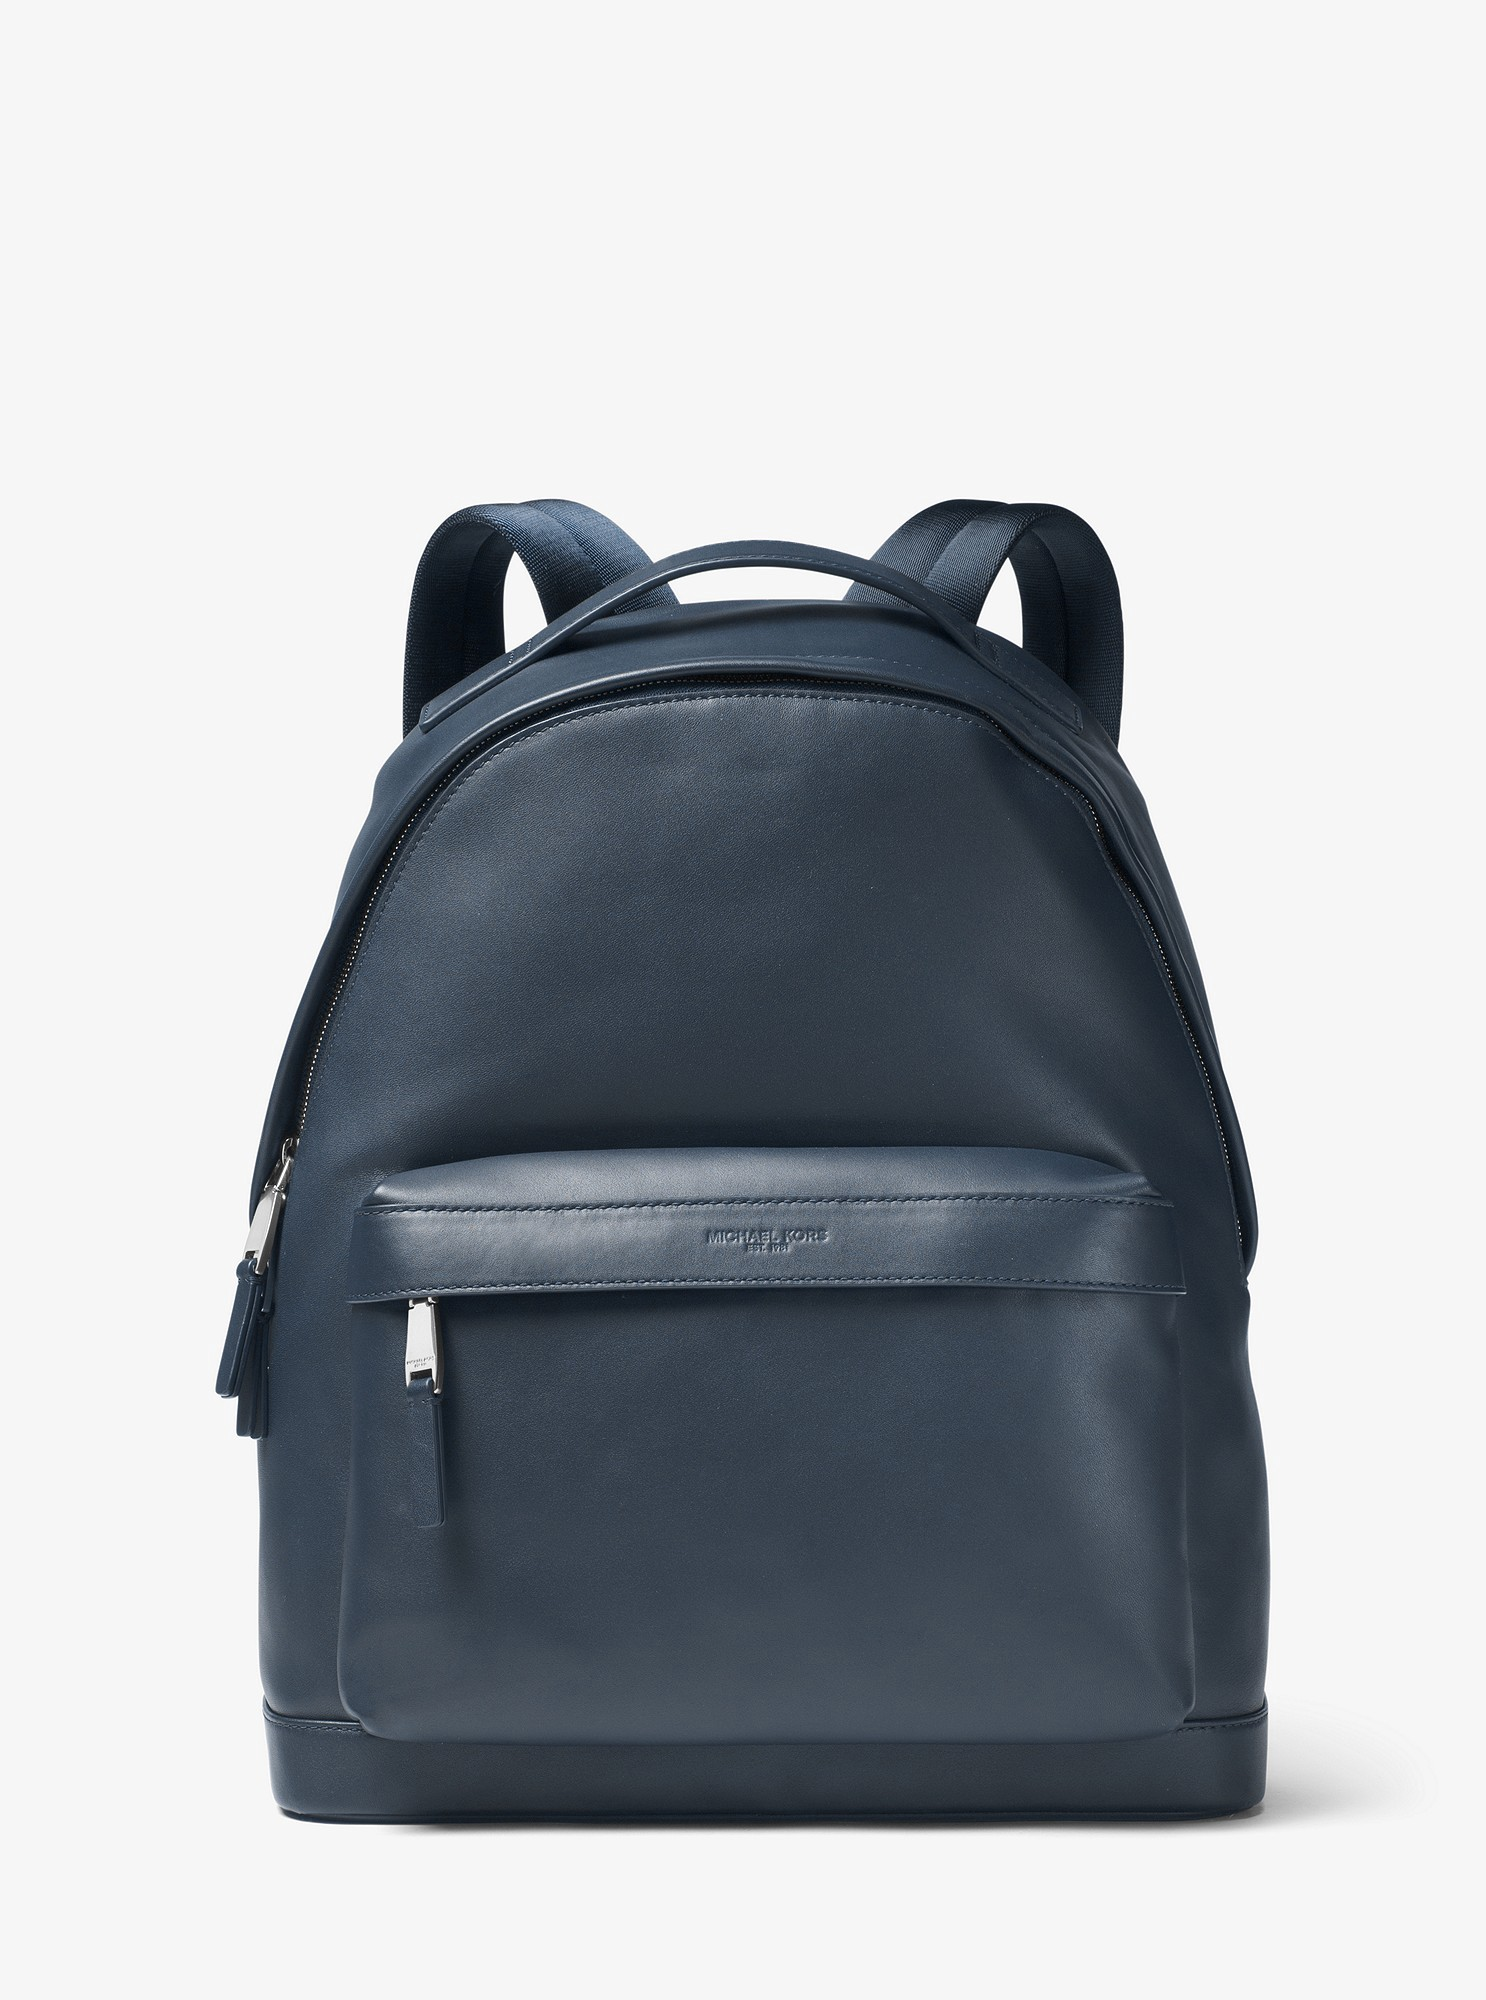 96f72b928e8e Odin Leather Backpack by Michael Kors | Products | Leather backpack ...